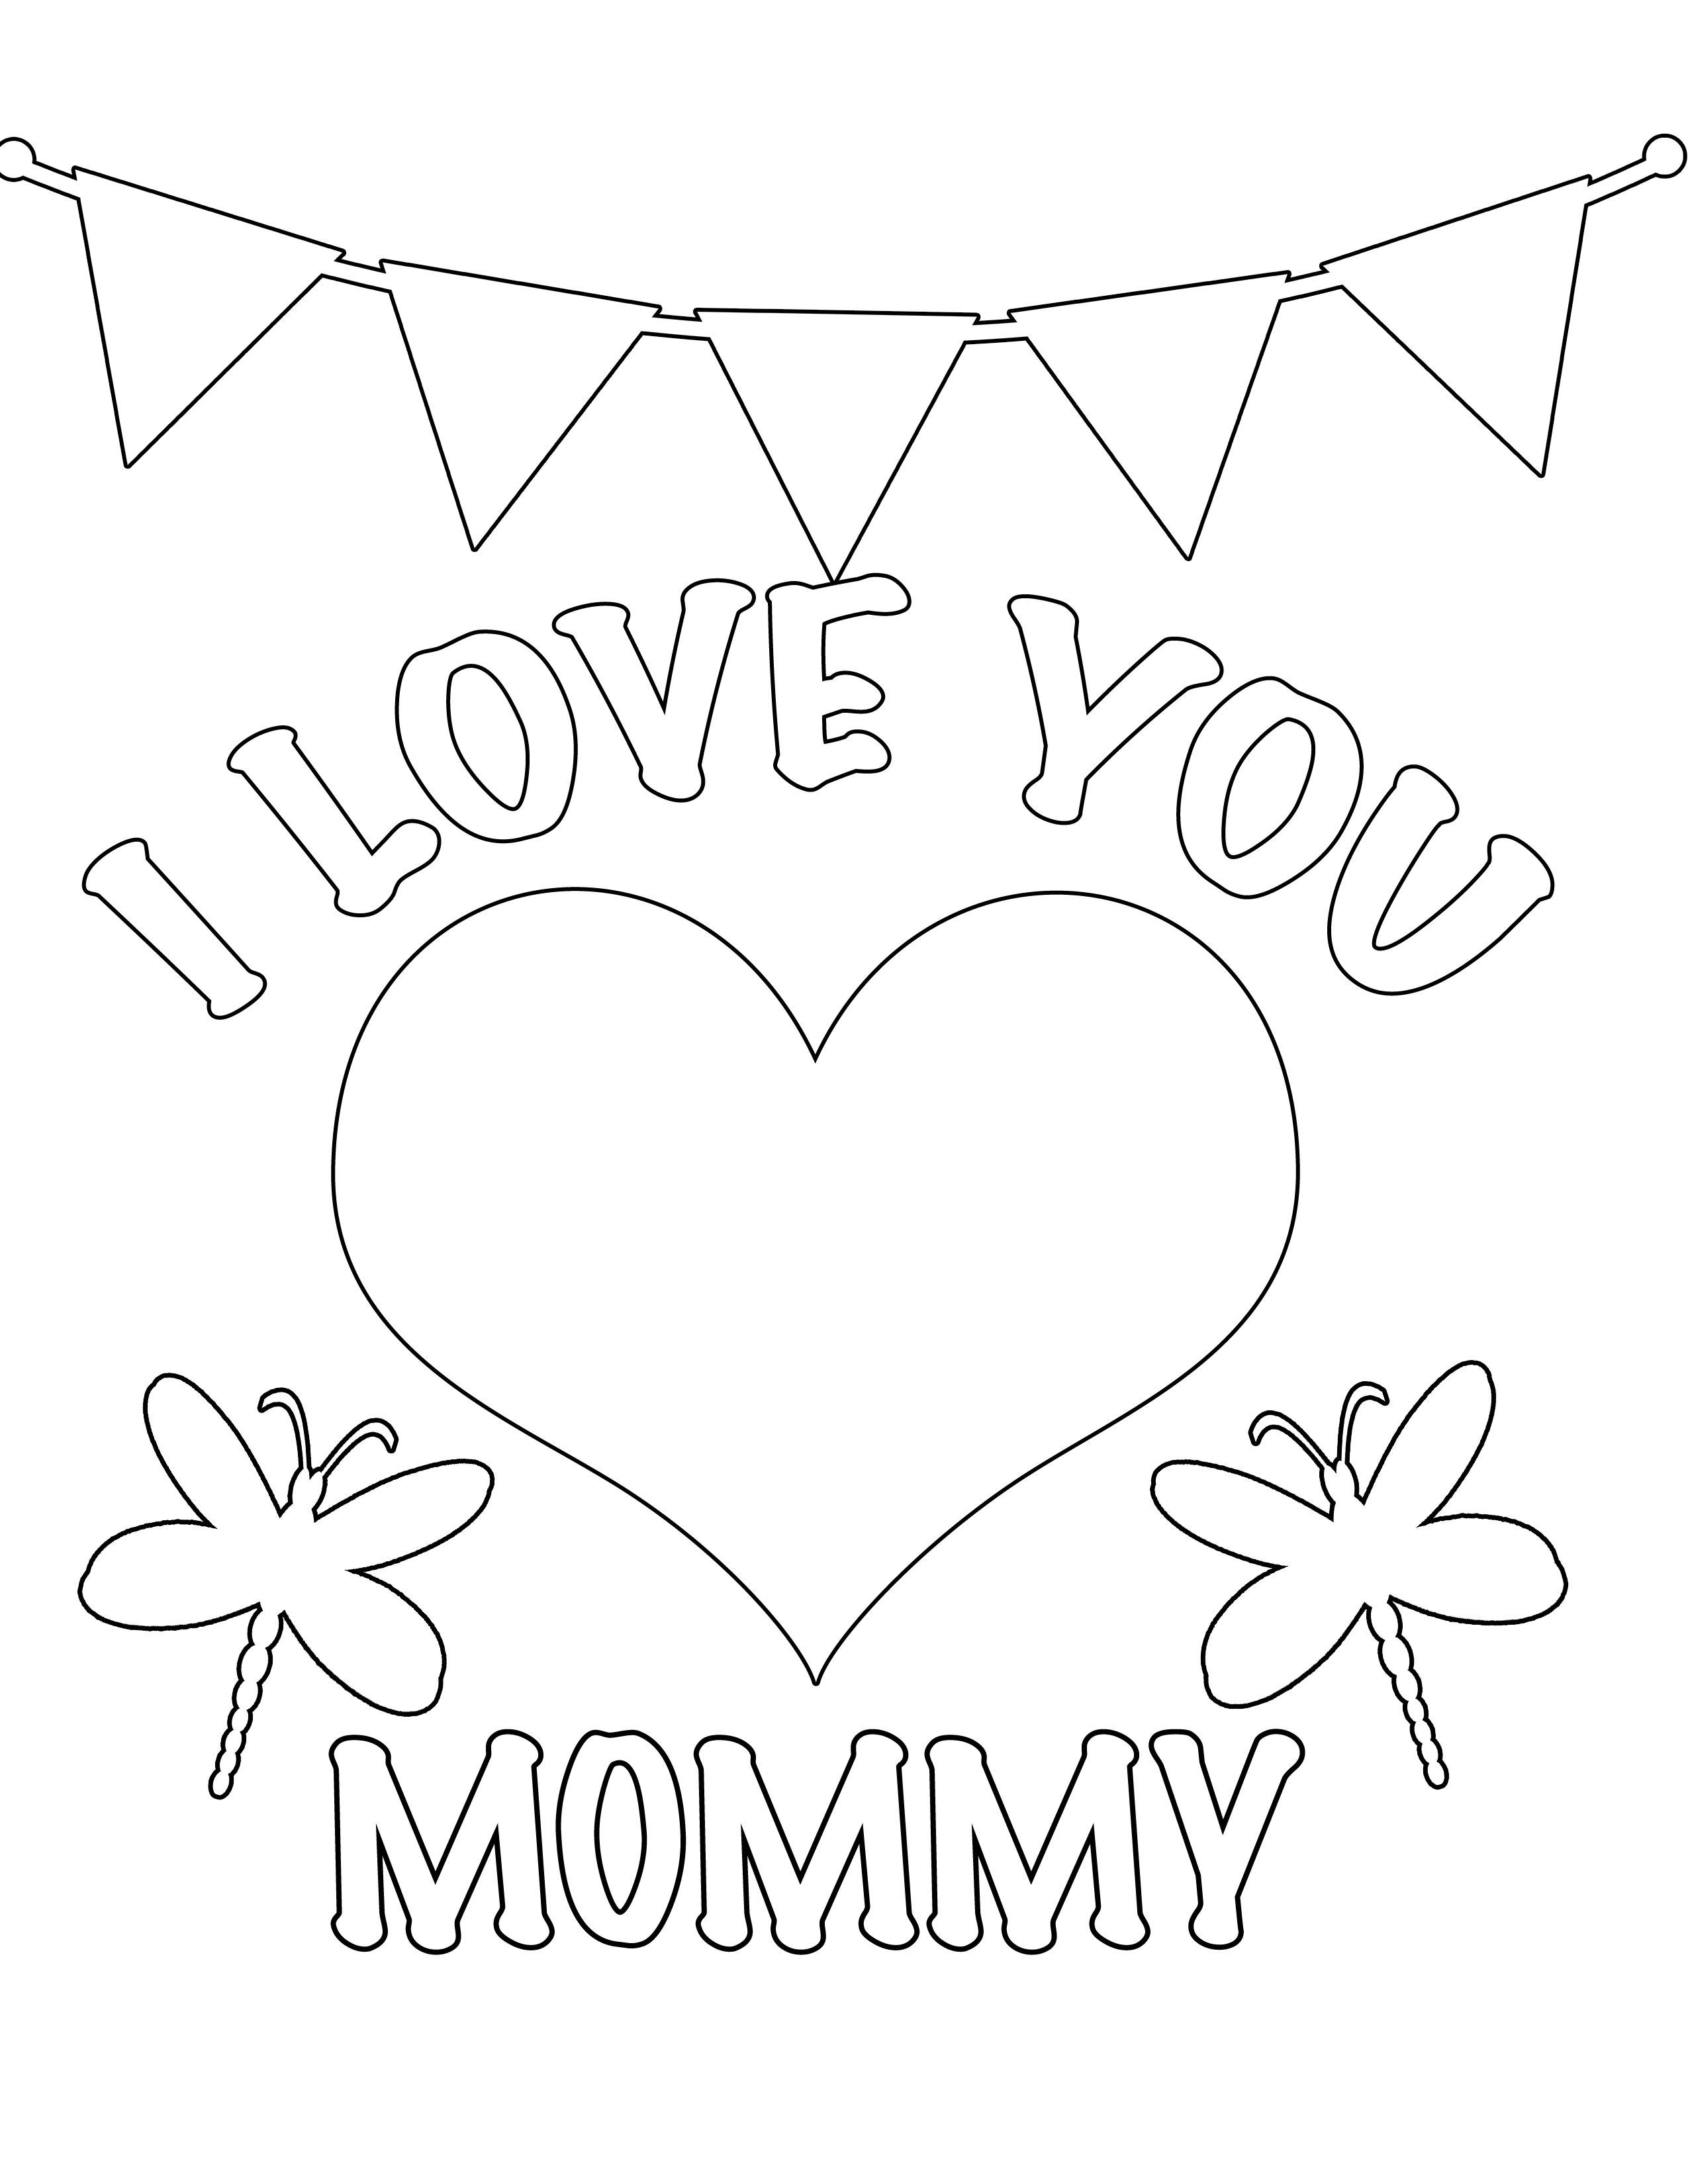 Improved Color Pages For Mom Best Archives Coloring In New Sheets Mom Coloring Pages Valentine Coloring Pages Valentines Day Coloring Page